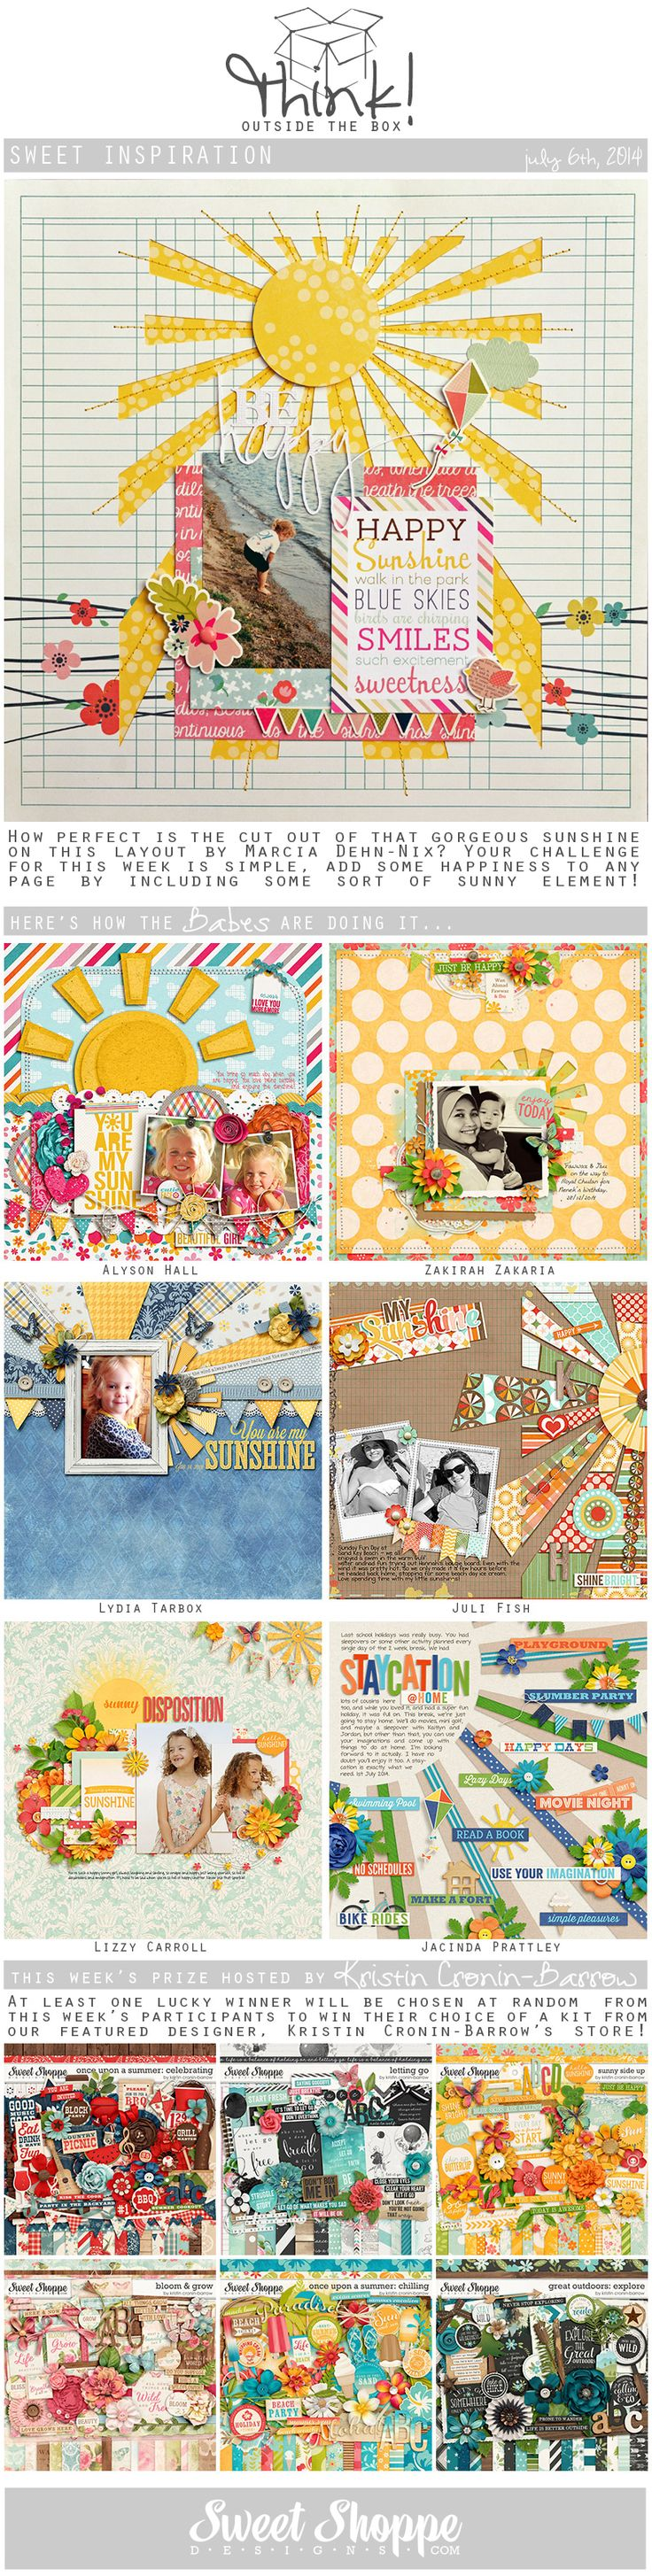 33 creative scrapbook ideas every crafter should know diy projects - Looking For A Fresh New Take On A Scrap Challenge Check Out Sweet Shoppe Designs Think Outside The Box Challenge For July And Scrap Along For Your Chance